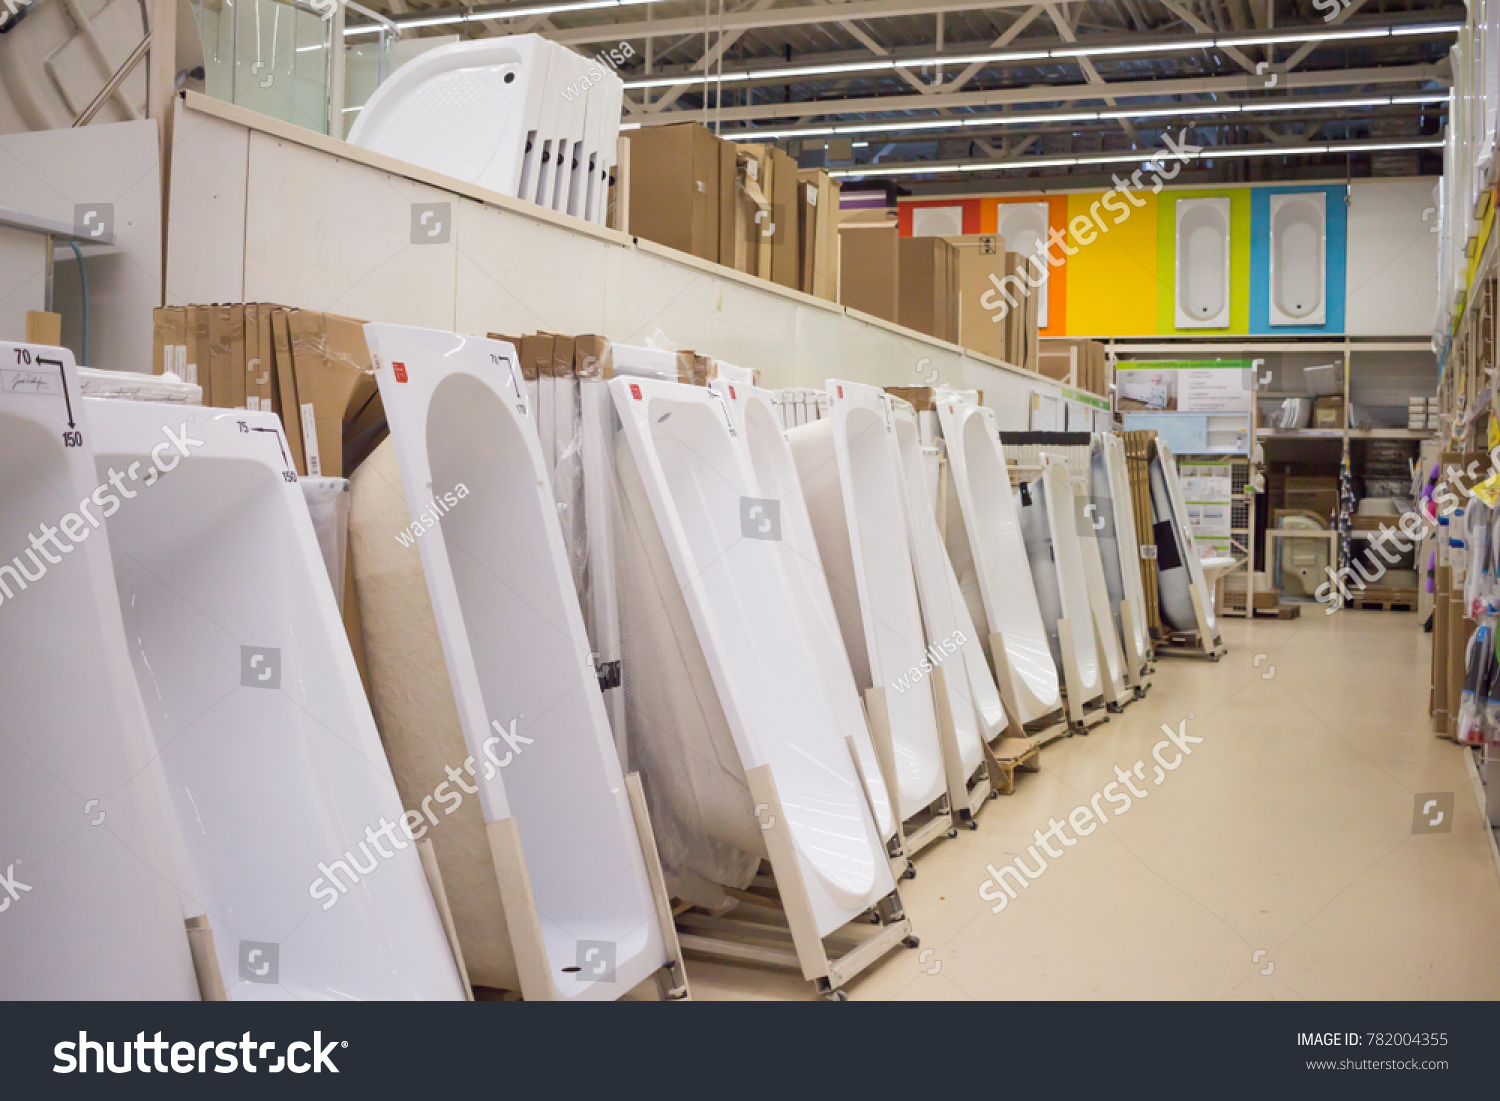 Superb Affordable Russia Moscow The Interior Of Leroy Merlin Store Leroy With Store  Leroy Merlin.